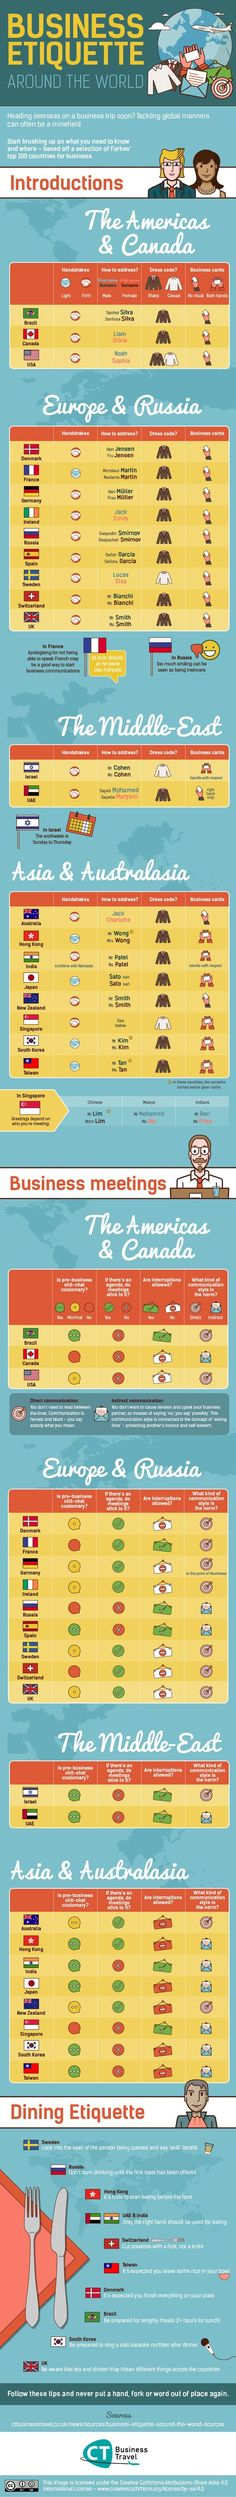 Business Etiquette around the world - Good to know with your international business clients! (scheduled via http://www.tailwindapp.com?utm_source=pinterest&utm_medium=twpin&utm_content=post29912018&utm_campaign=scheduler_attribution)